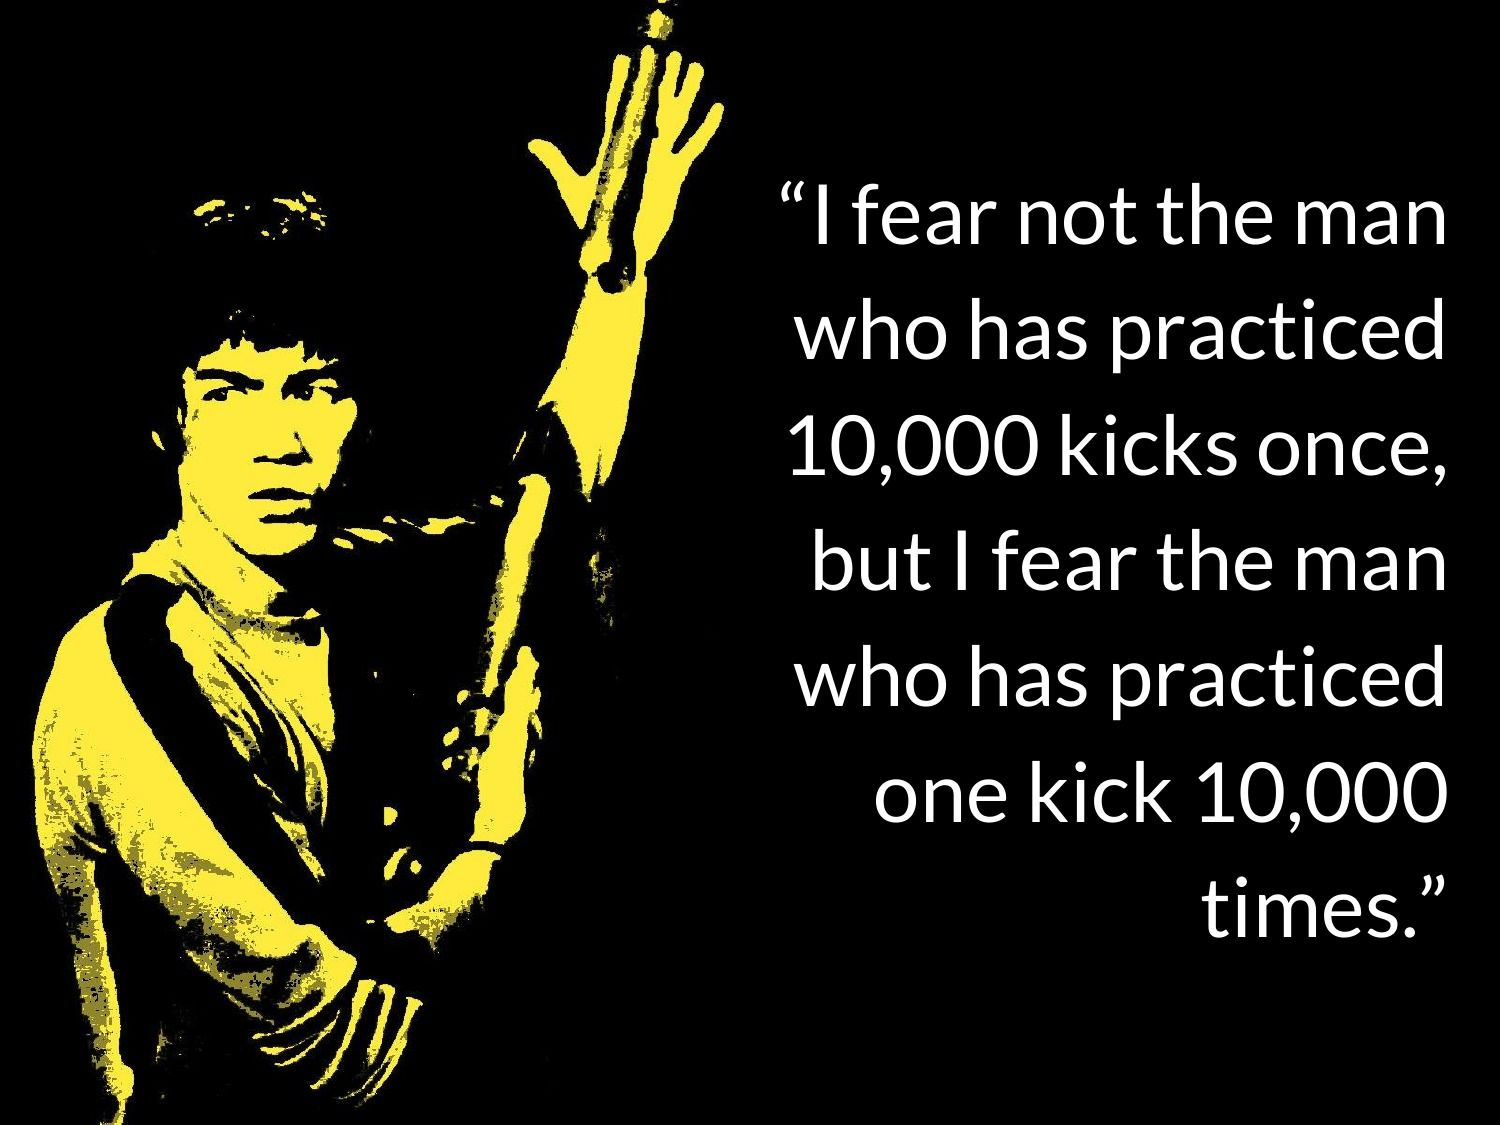 """I fear not the man who has practiced 10,000 kicks once, but I fear the man who has practiced one kick 10,000 times.""- Bruce Lee [1500×1125]"